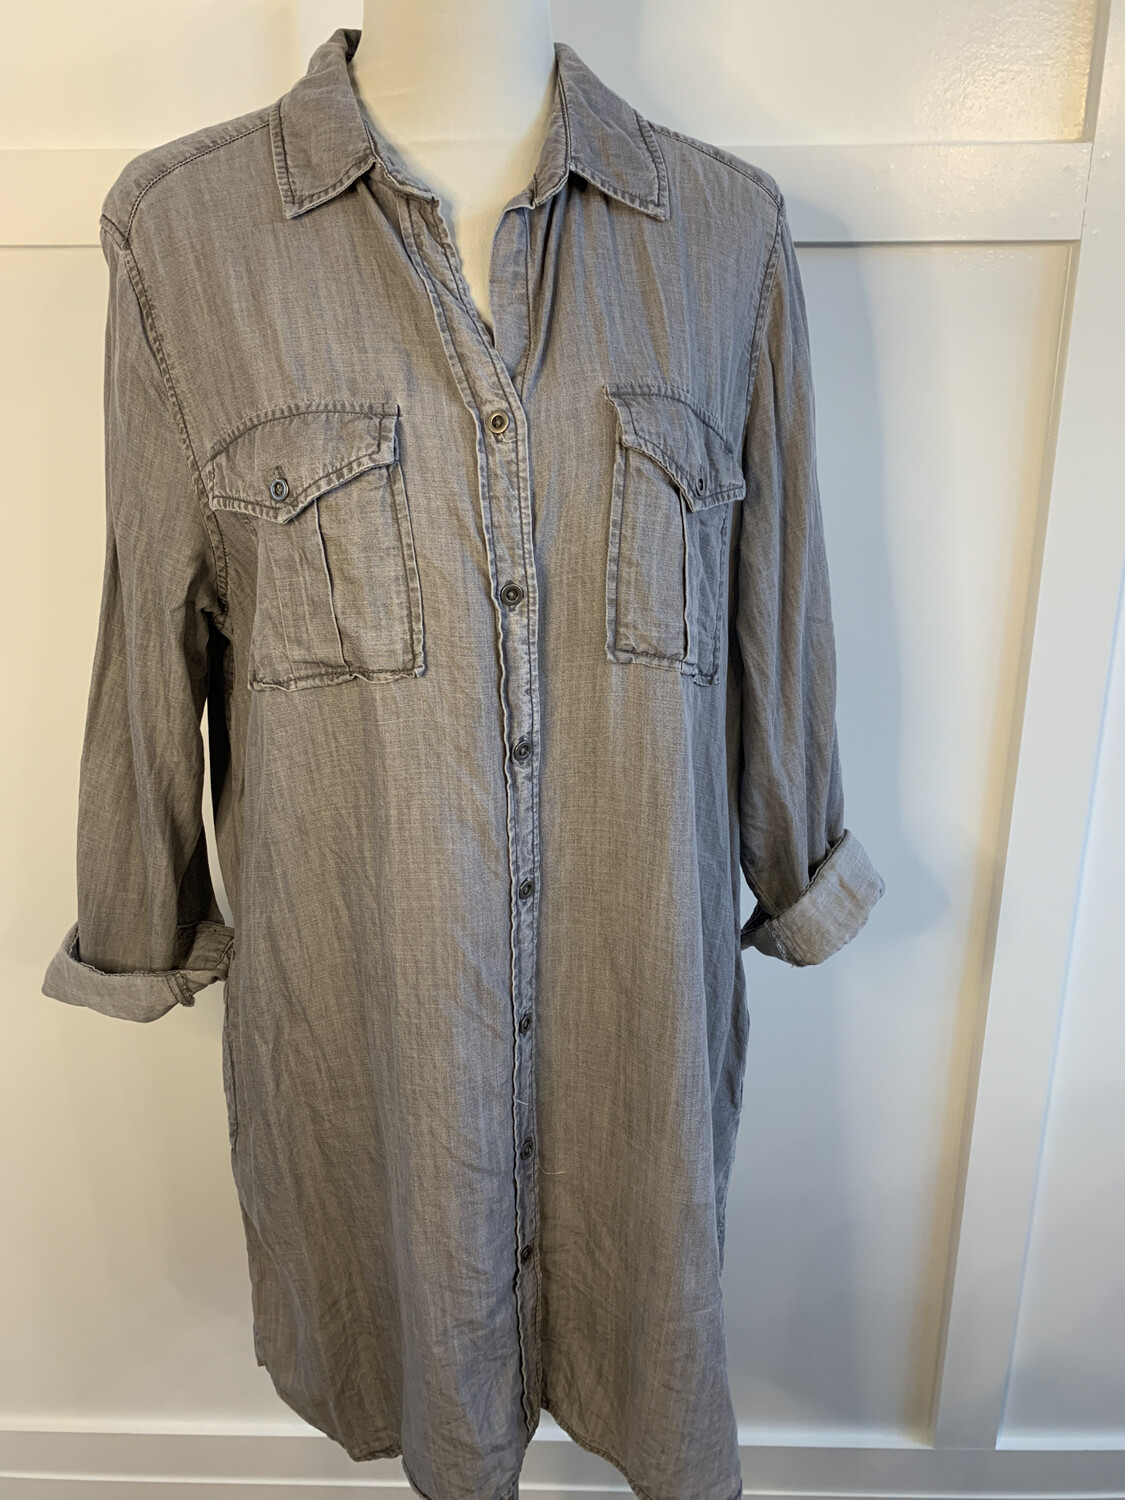 Philosophy Button Up Dress w/ Pockets - XL